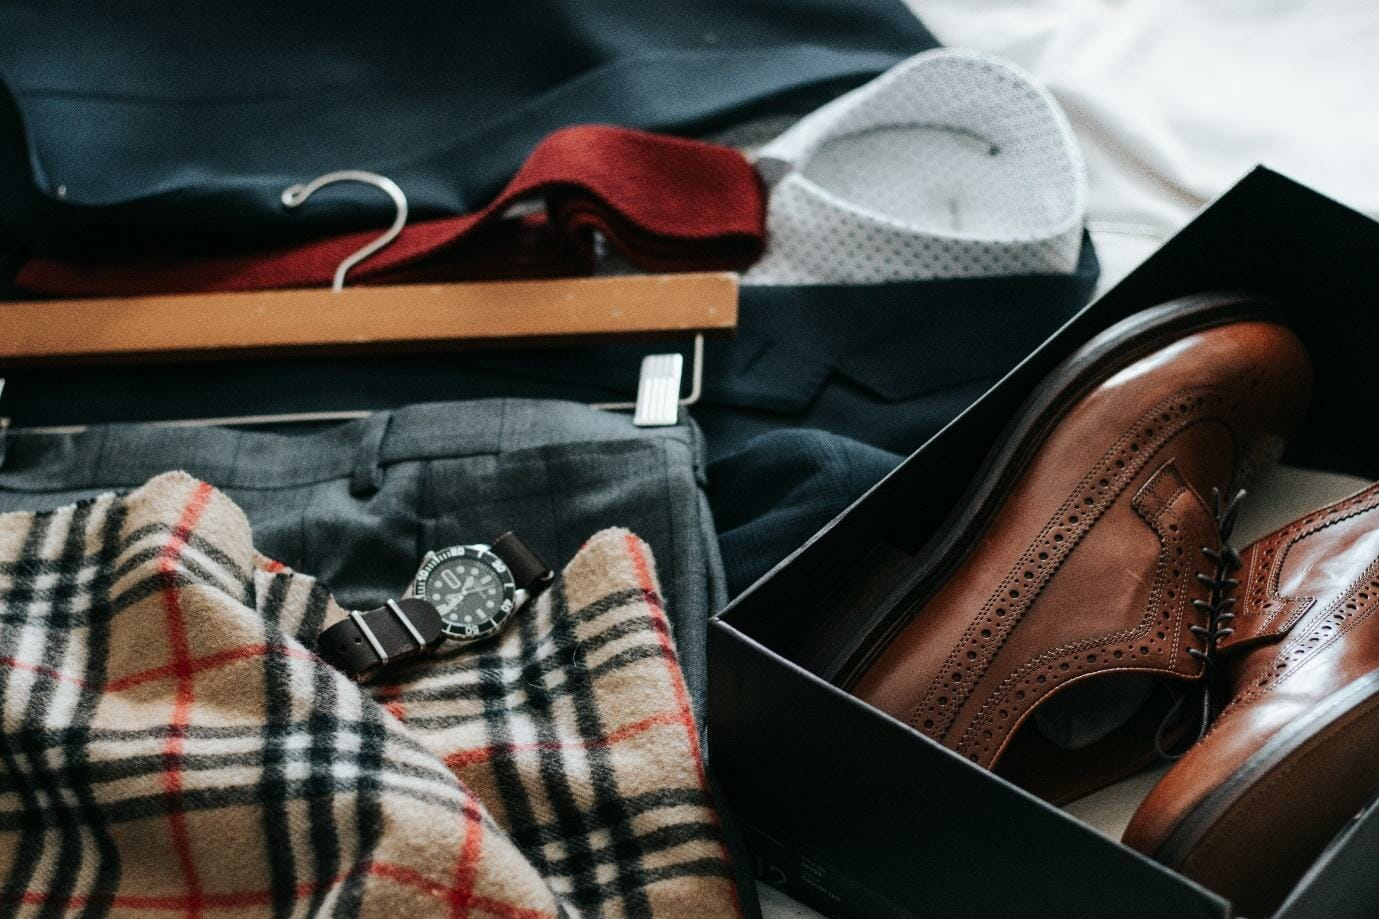 Dressed for success: 3 ways to look more professional in your new job